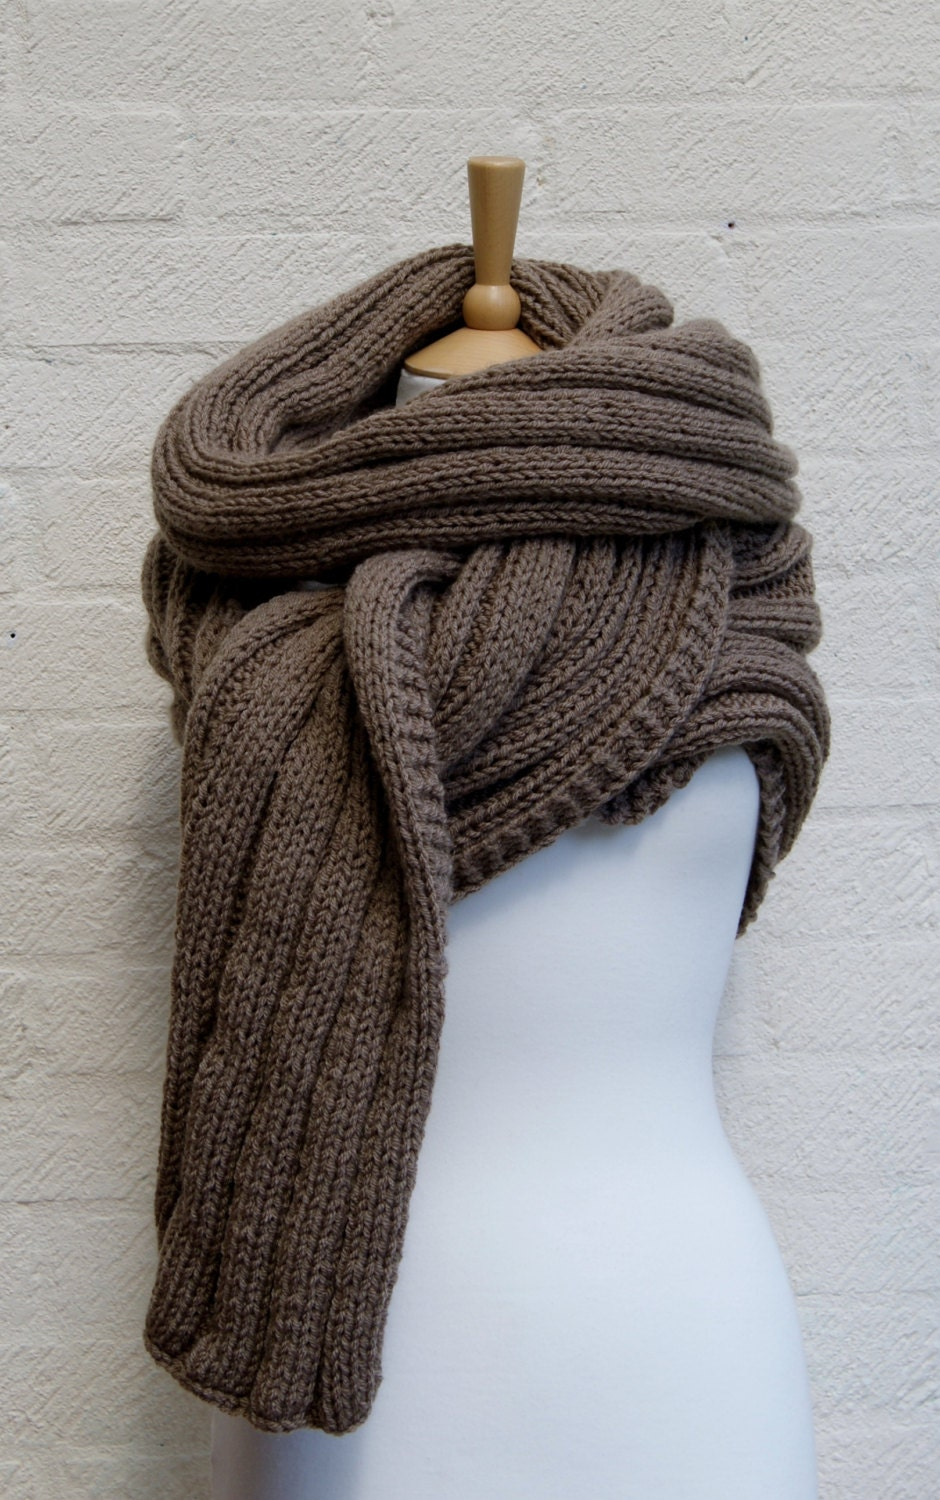 Find great deals on eBay for chunky knit scarf. Shop with confidence.